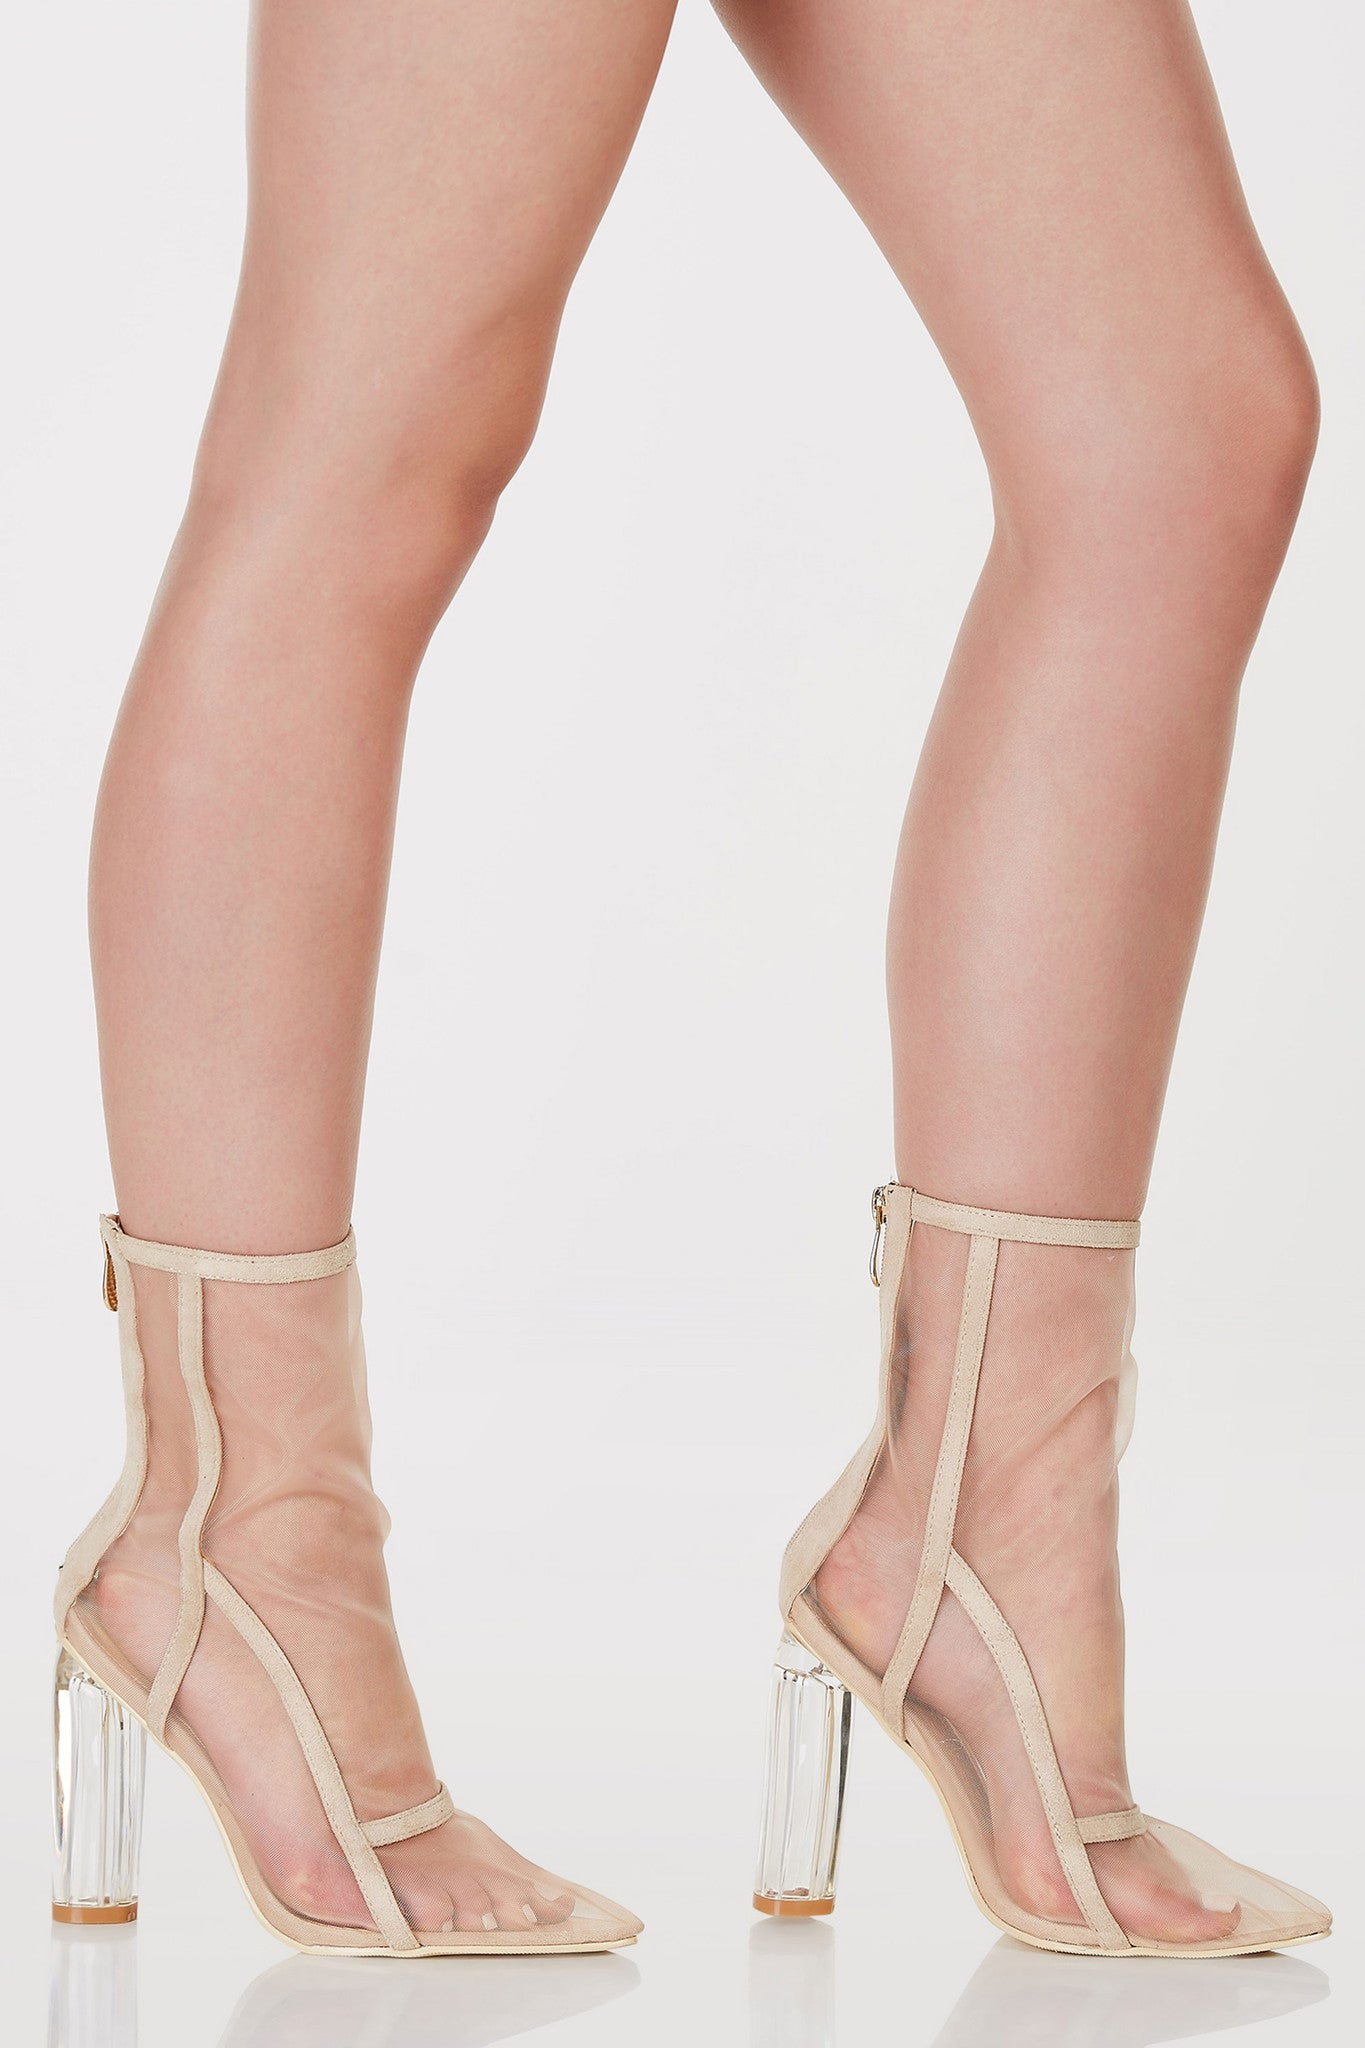 Above the ankle rise booties with mesh finish. Zip back closure with clear block heels.